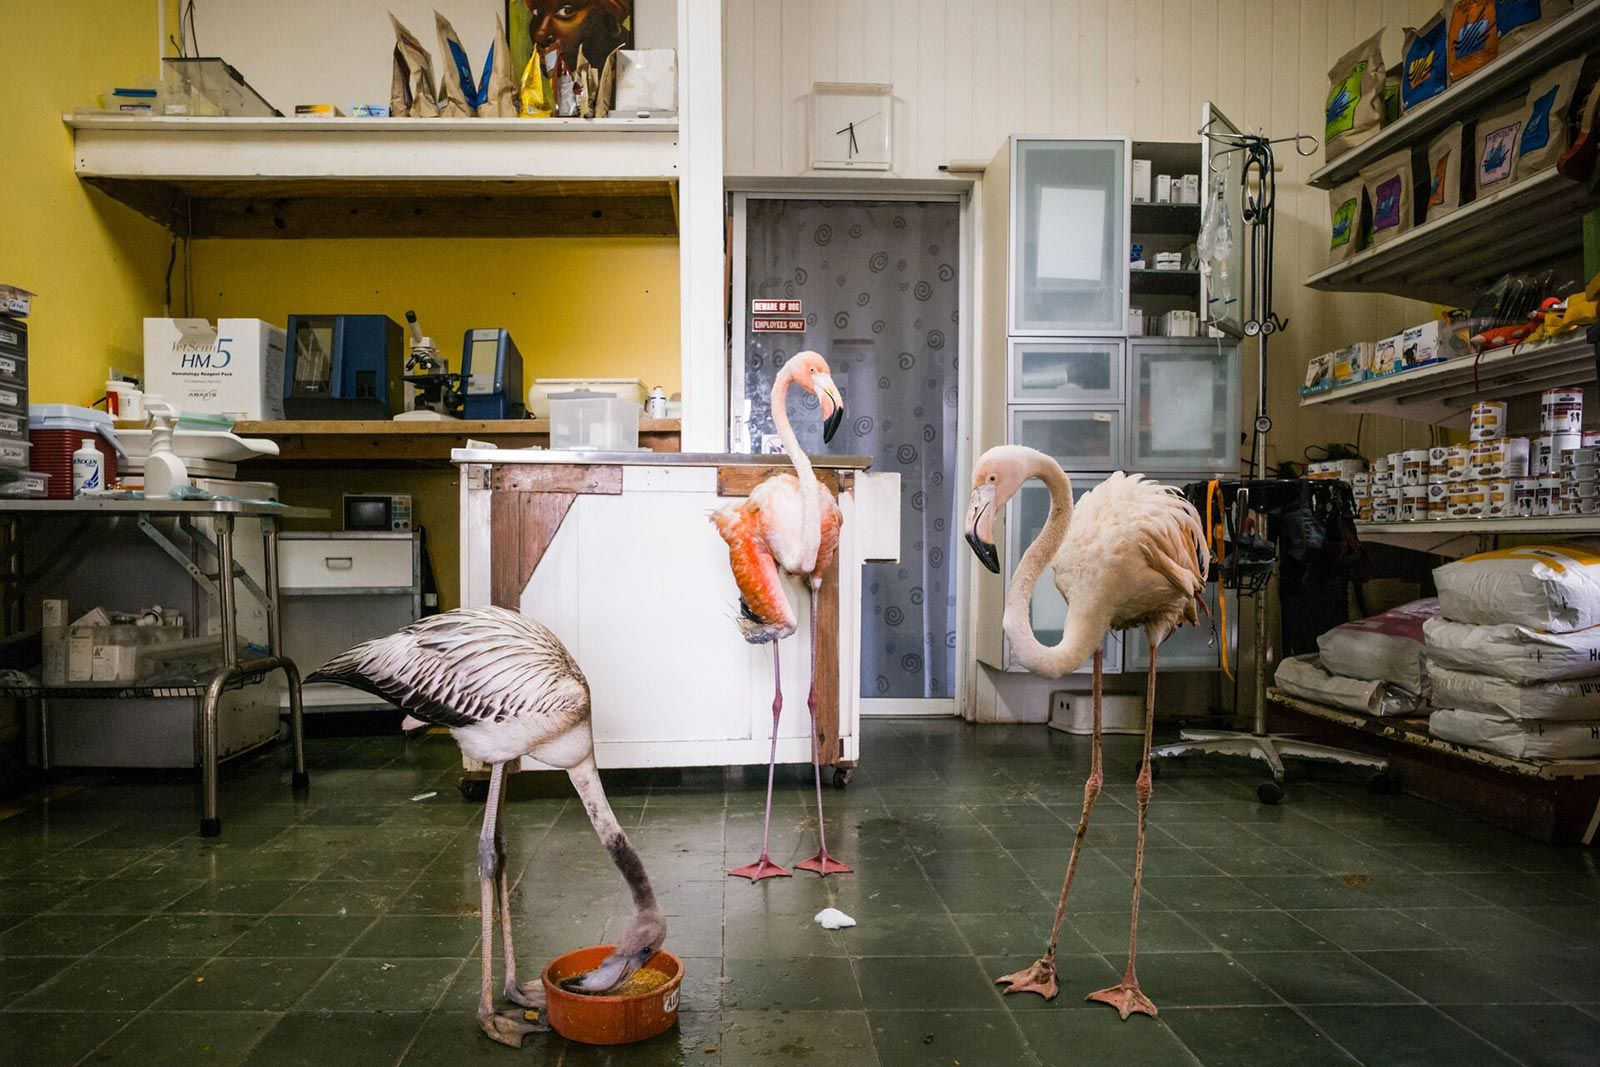 Flamingo In Huis : These are real flamingo s in rehab at a veterinary office a